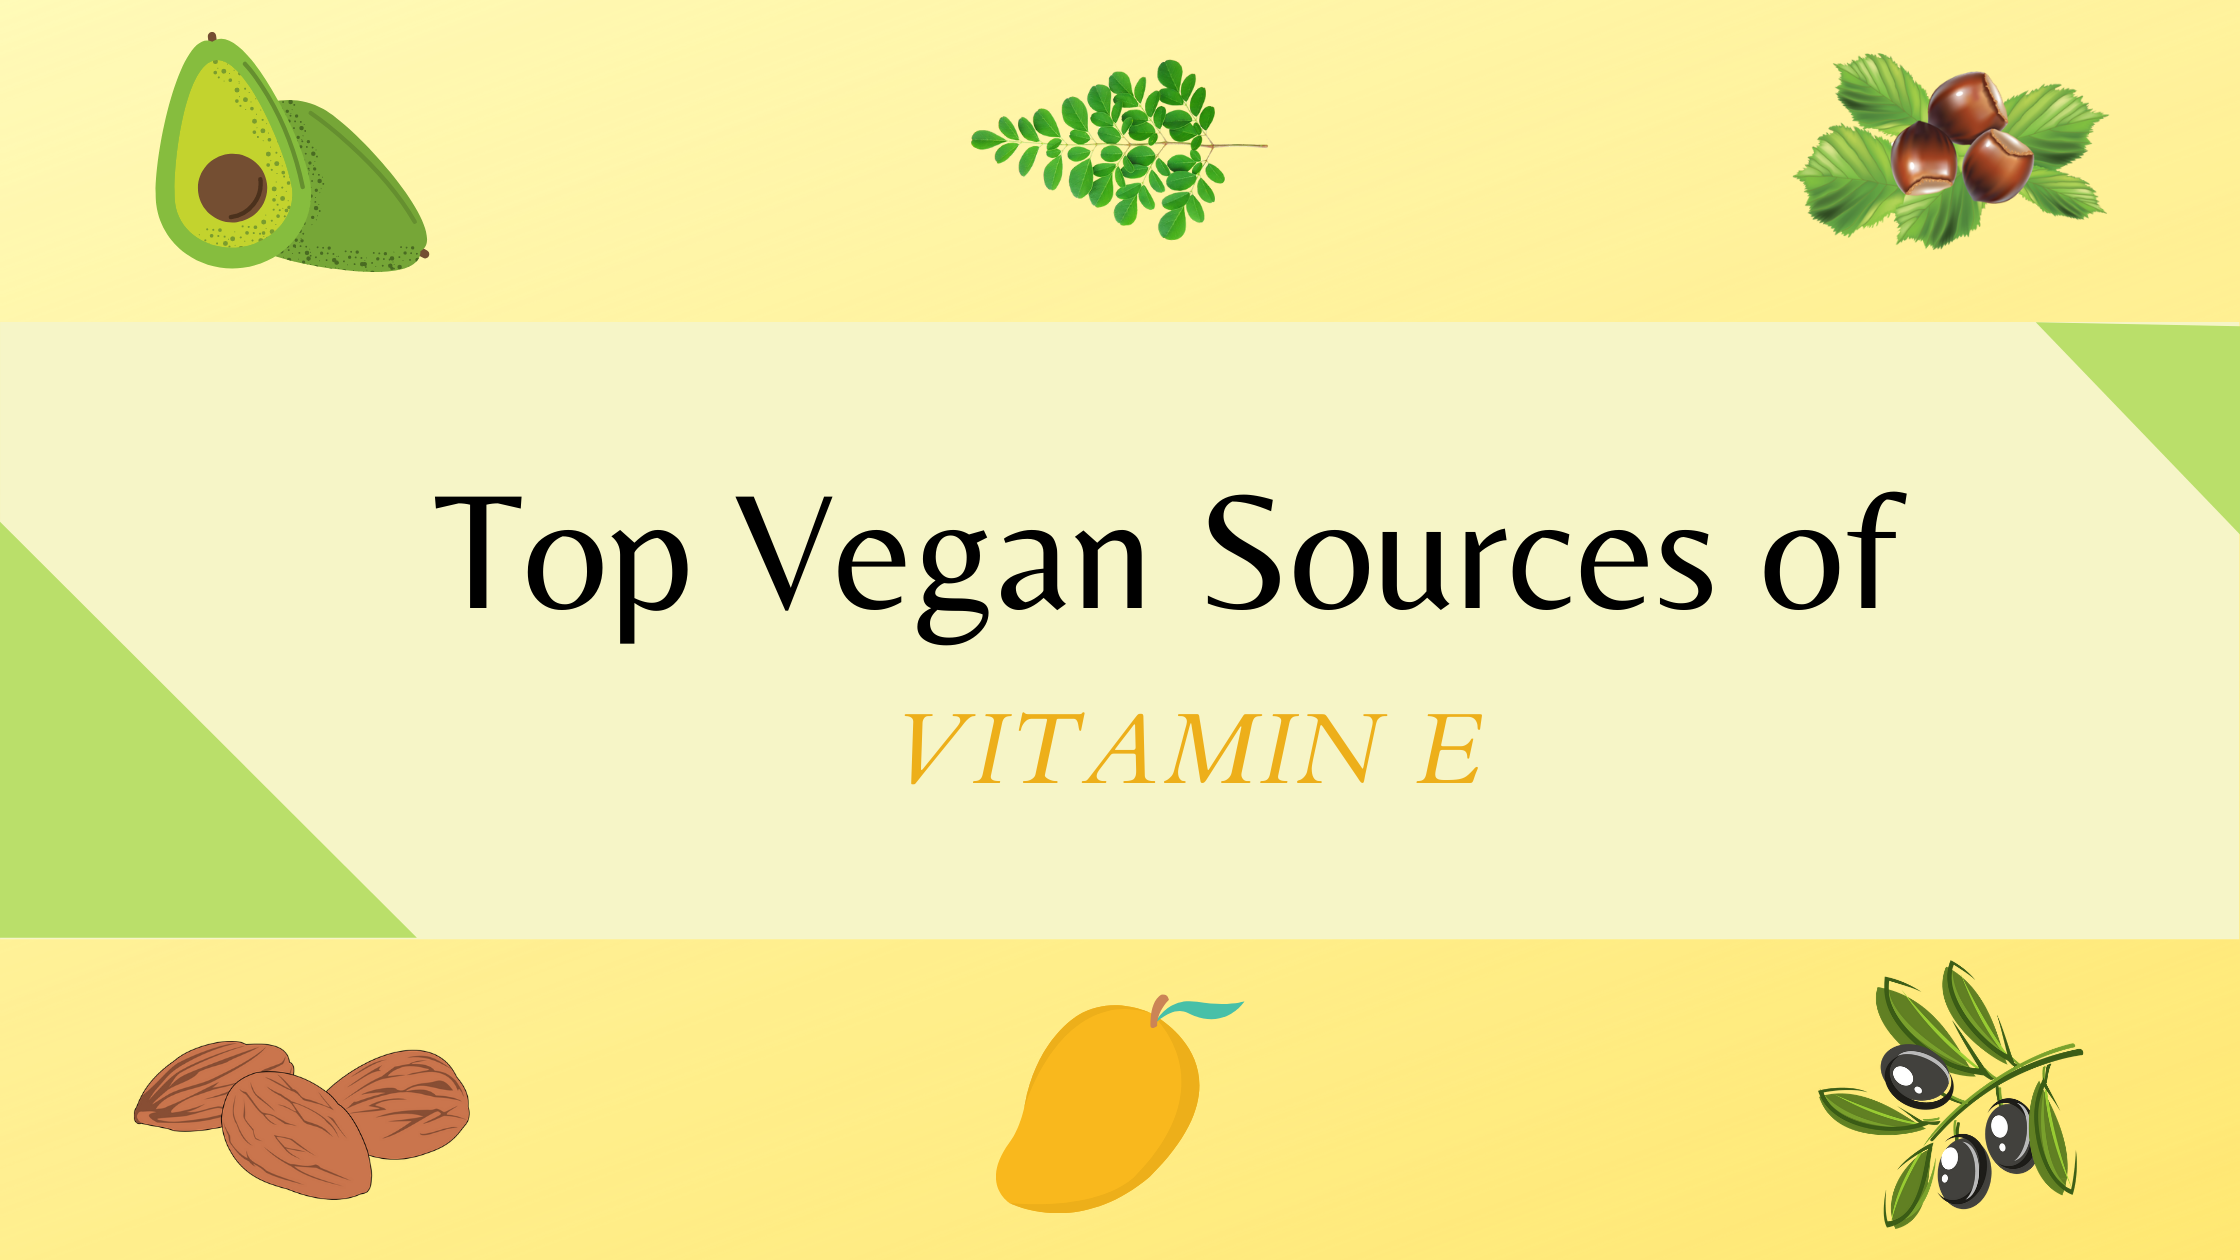 vitamin e rich vegan food sources